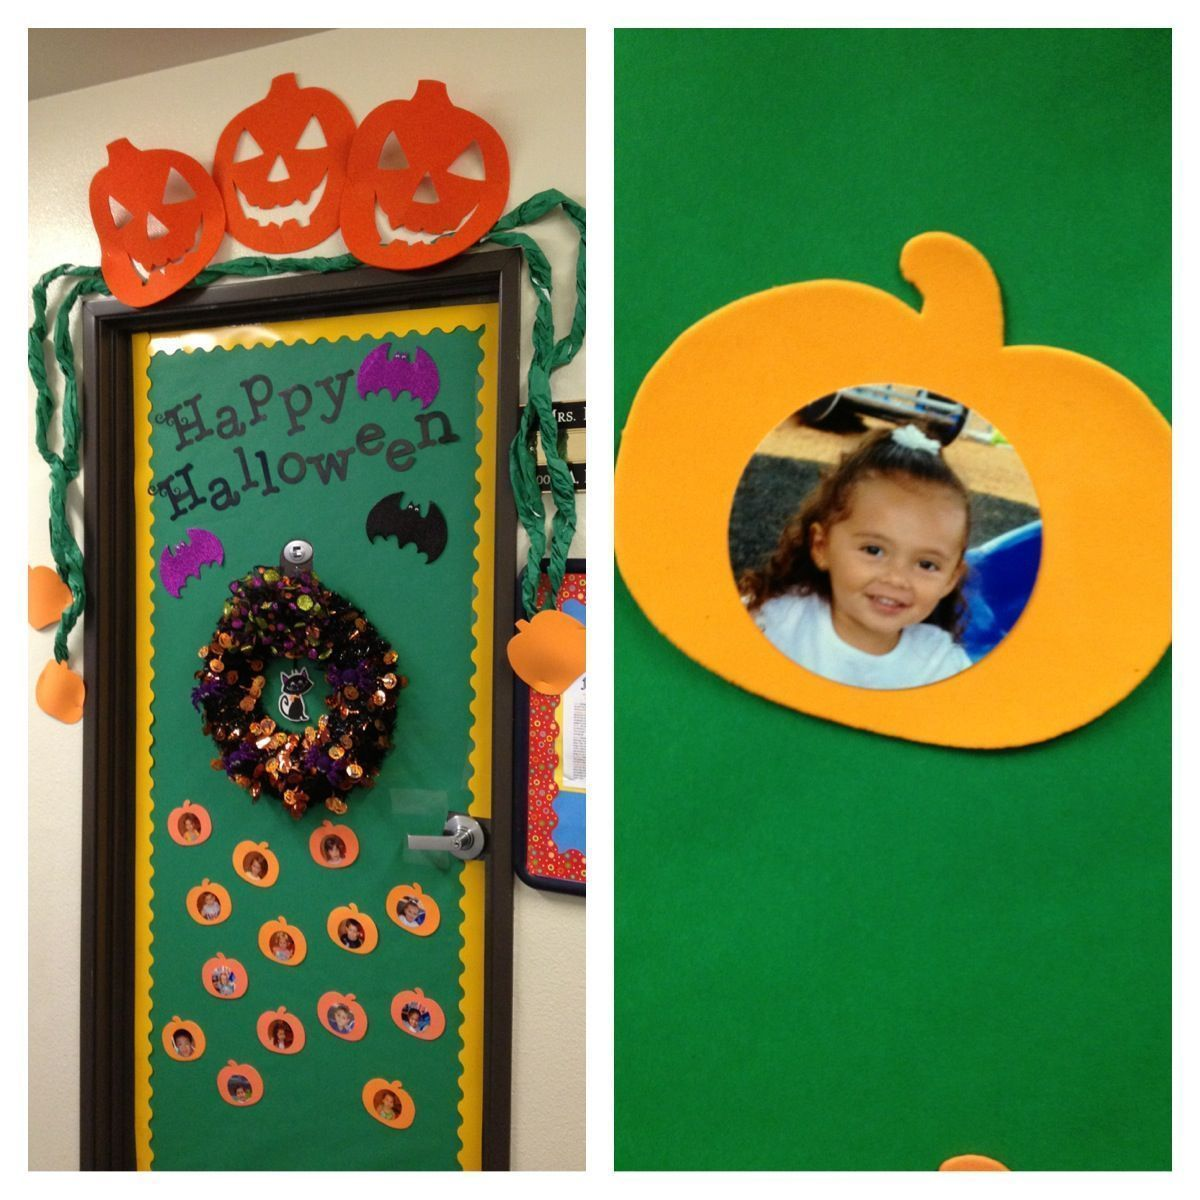 Halloween classroom door decoration #halloweenclassroomdoor Halloween classroom door decoration #halloweenclassroomdoor Halloween classroom door decoration #halloweenclassroomdoor Halloween classroom door decoration #halloweenclassroomdoor Halloween classroom door decoration #halloweenclassroomdoor Halloween classroom door decoration #halloweenclassroomdoor Halloween classroom door decoration #halloweenclassroomdoor Halloween classroom door decoration #halloweenclassroomdoor Halloween classroom #halloweenclassroomdoor